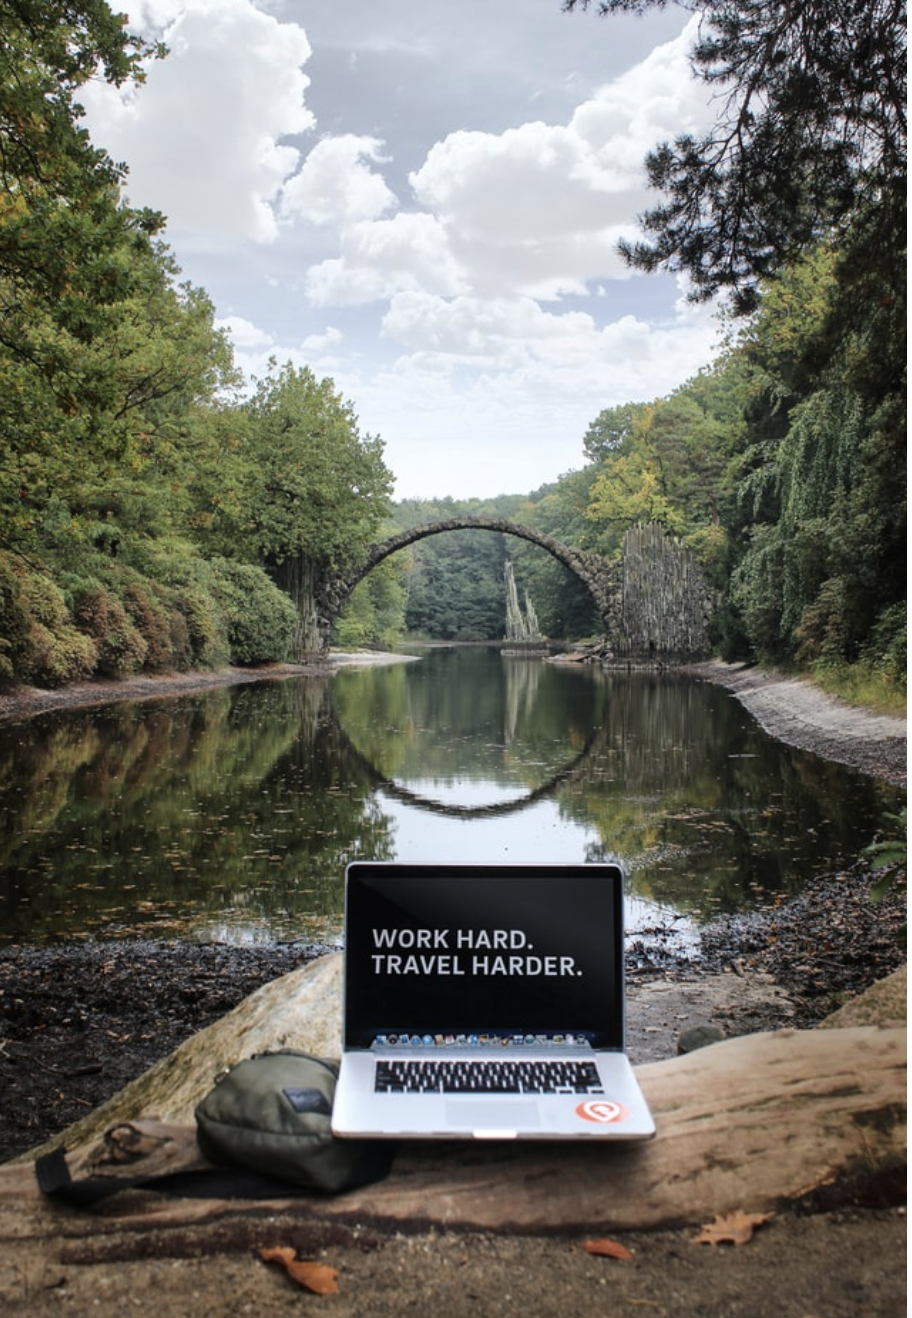 DIGITAL NOMADS – TRAVEL THE WORLD AND WORK SOME ALONG THE WAY